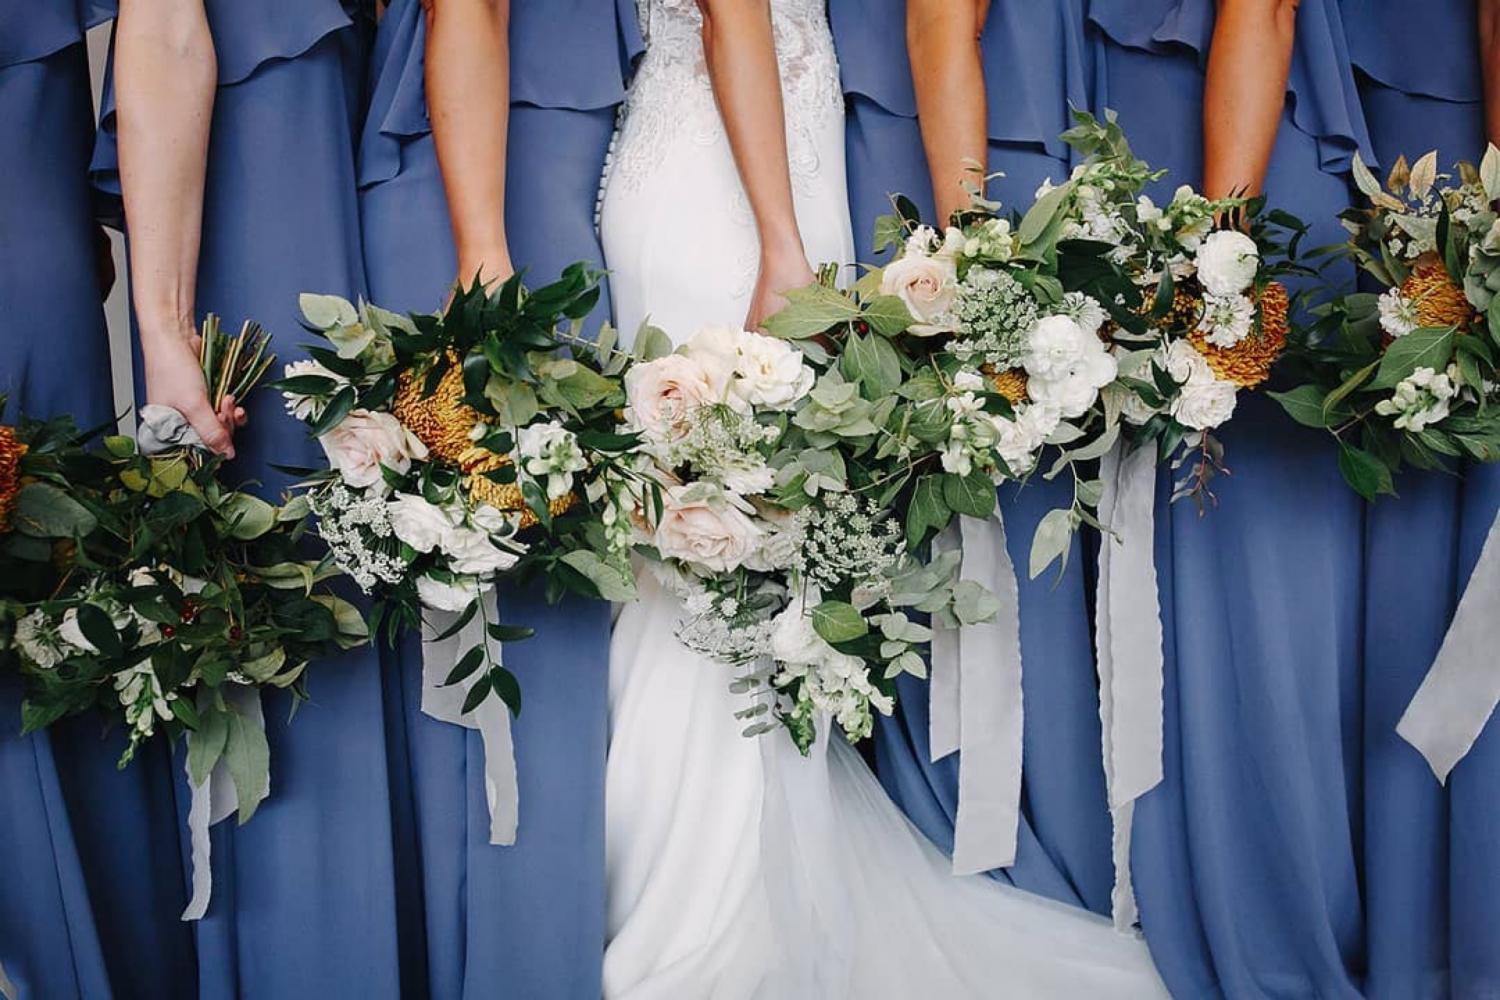 Bridesmaids Bouquets Adorned with Leaves